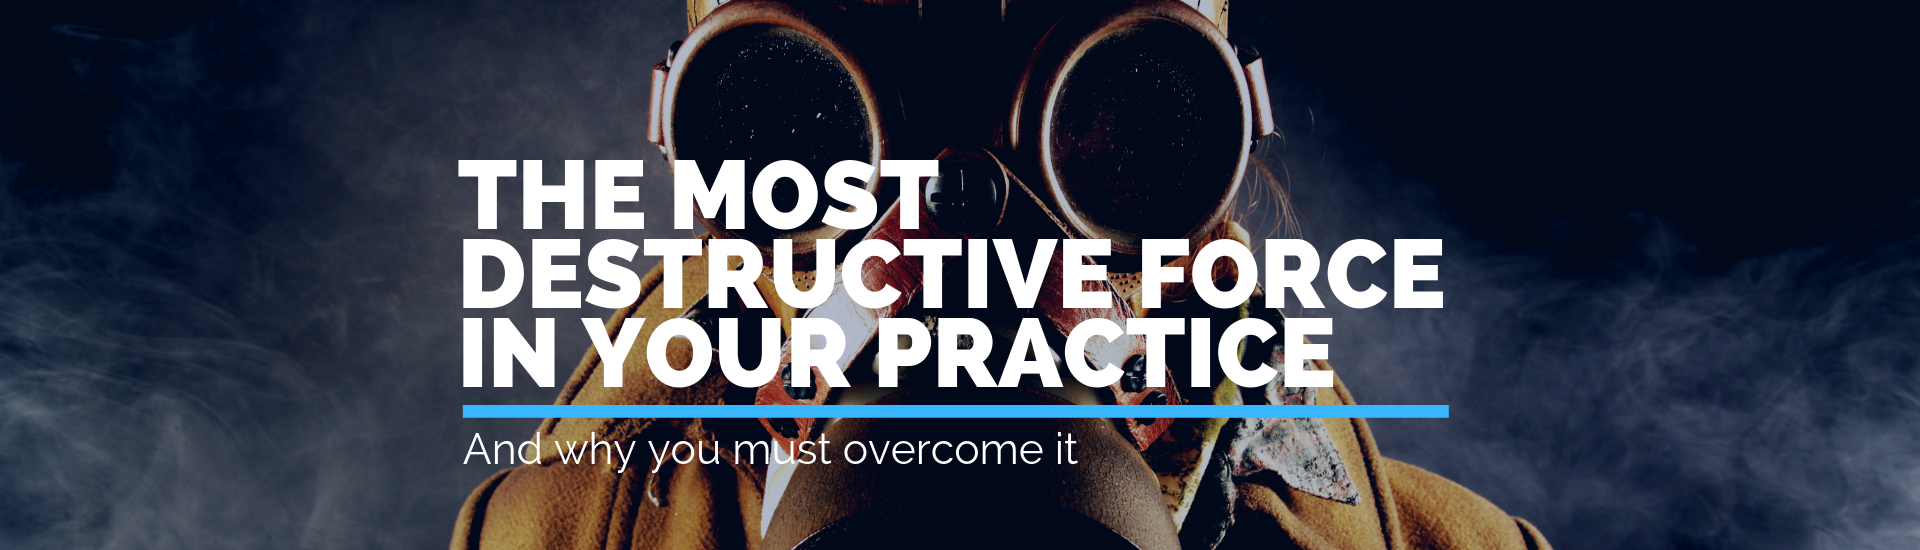 The Most Destructive Force in Professional Practice   Andrew Abel   Advisio